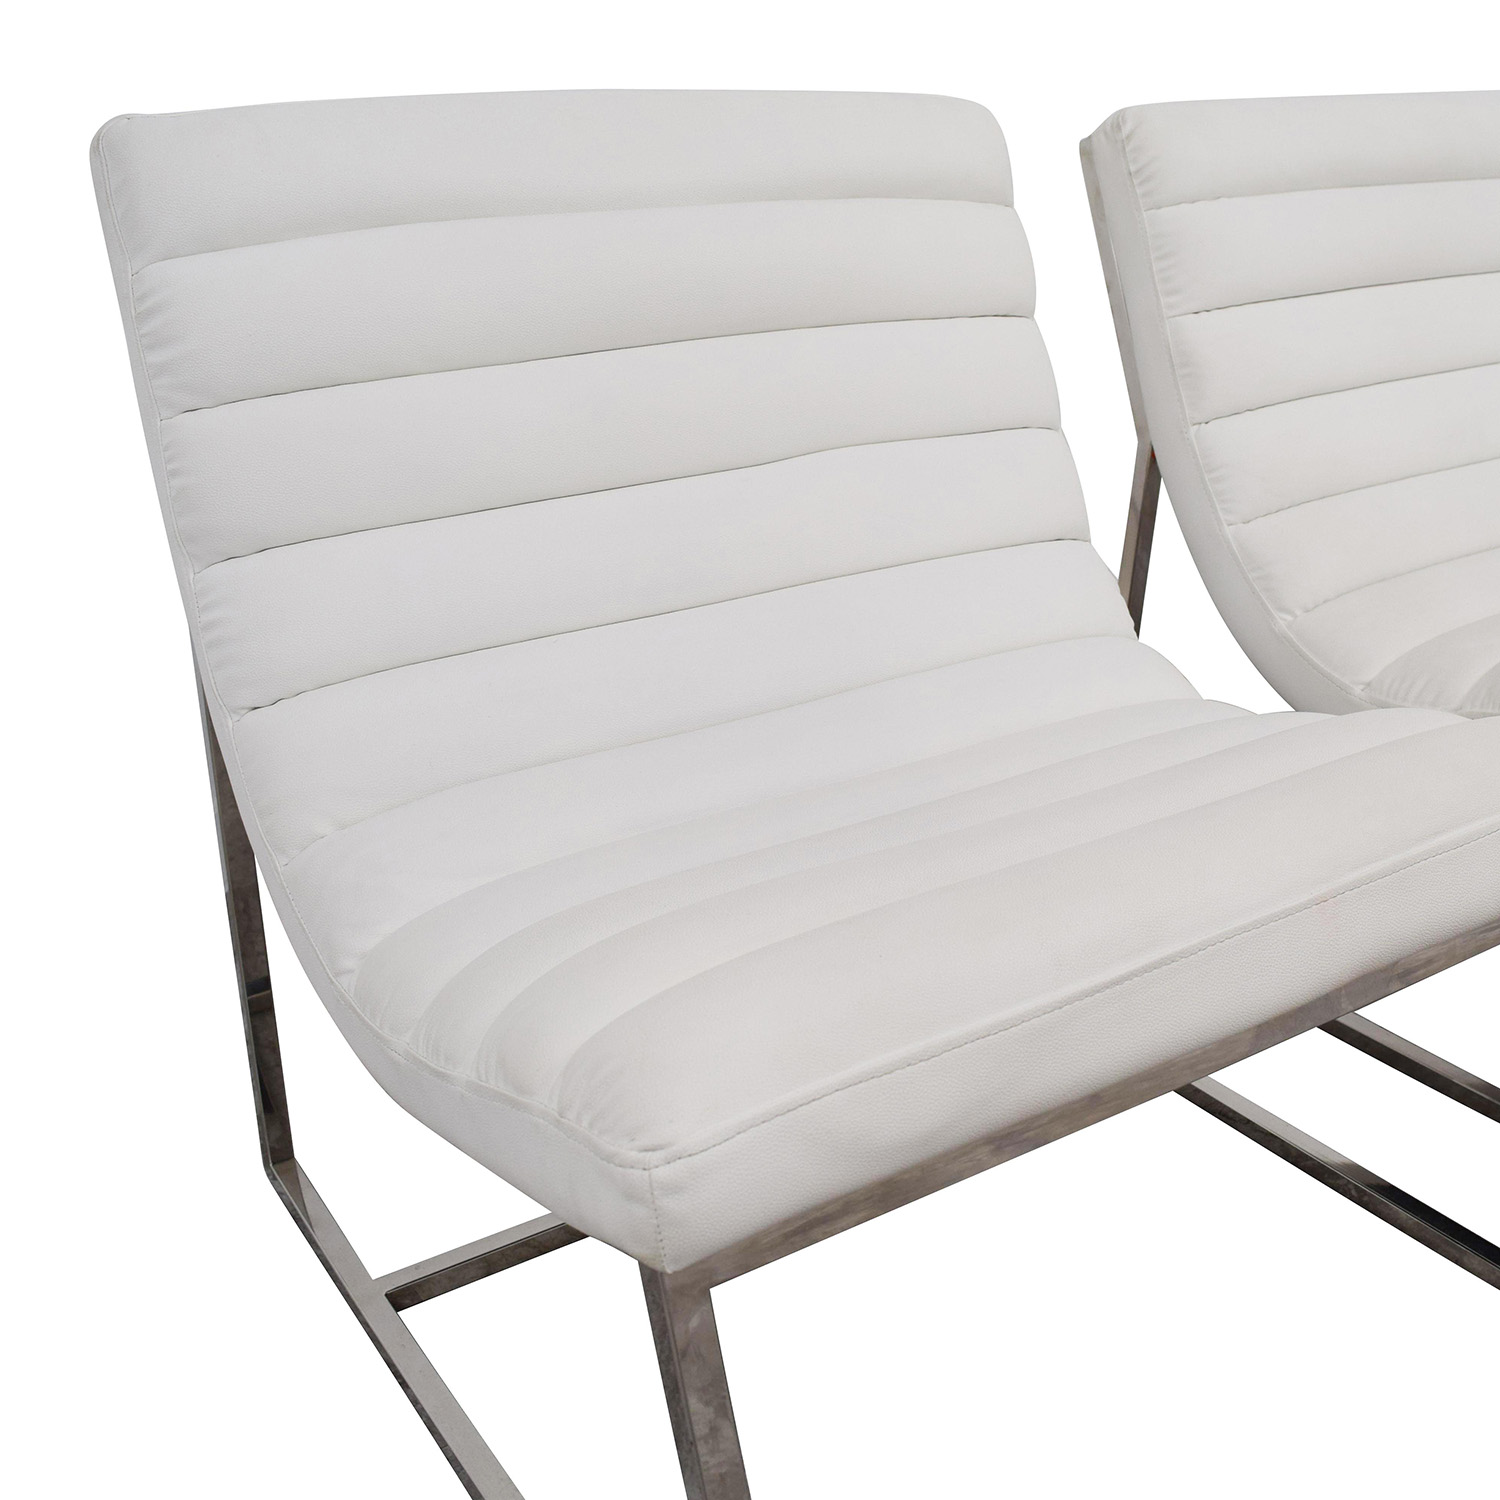 White Leather Chairs 43 Off White Leather Sofa Chairs Chairs